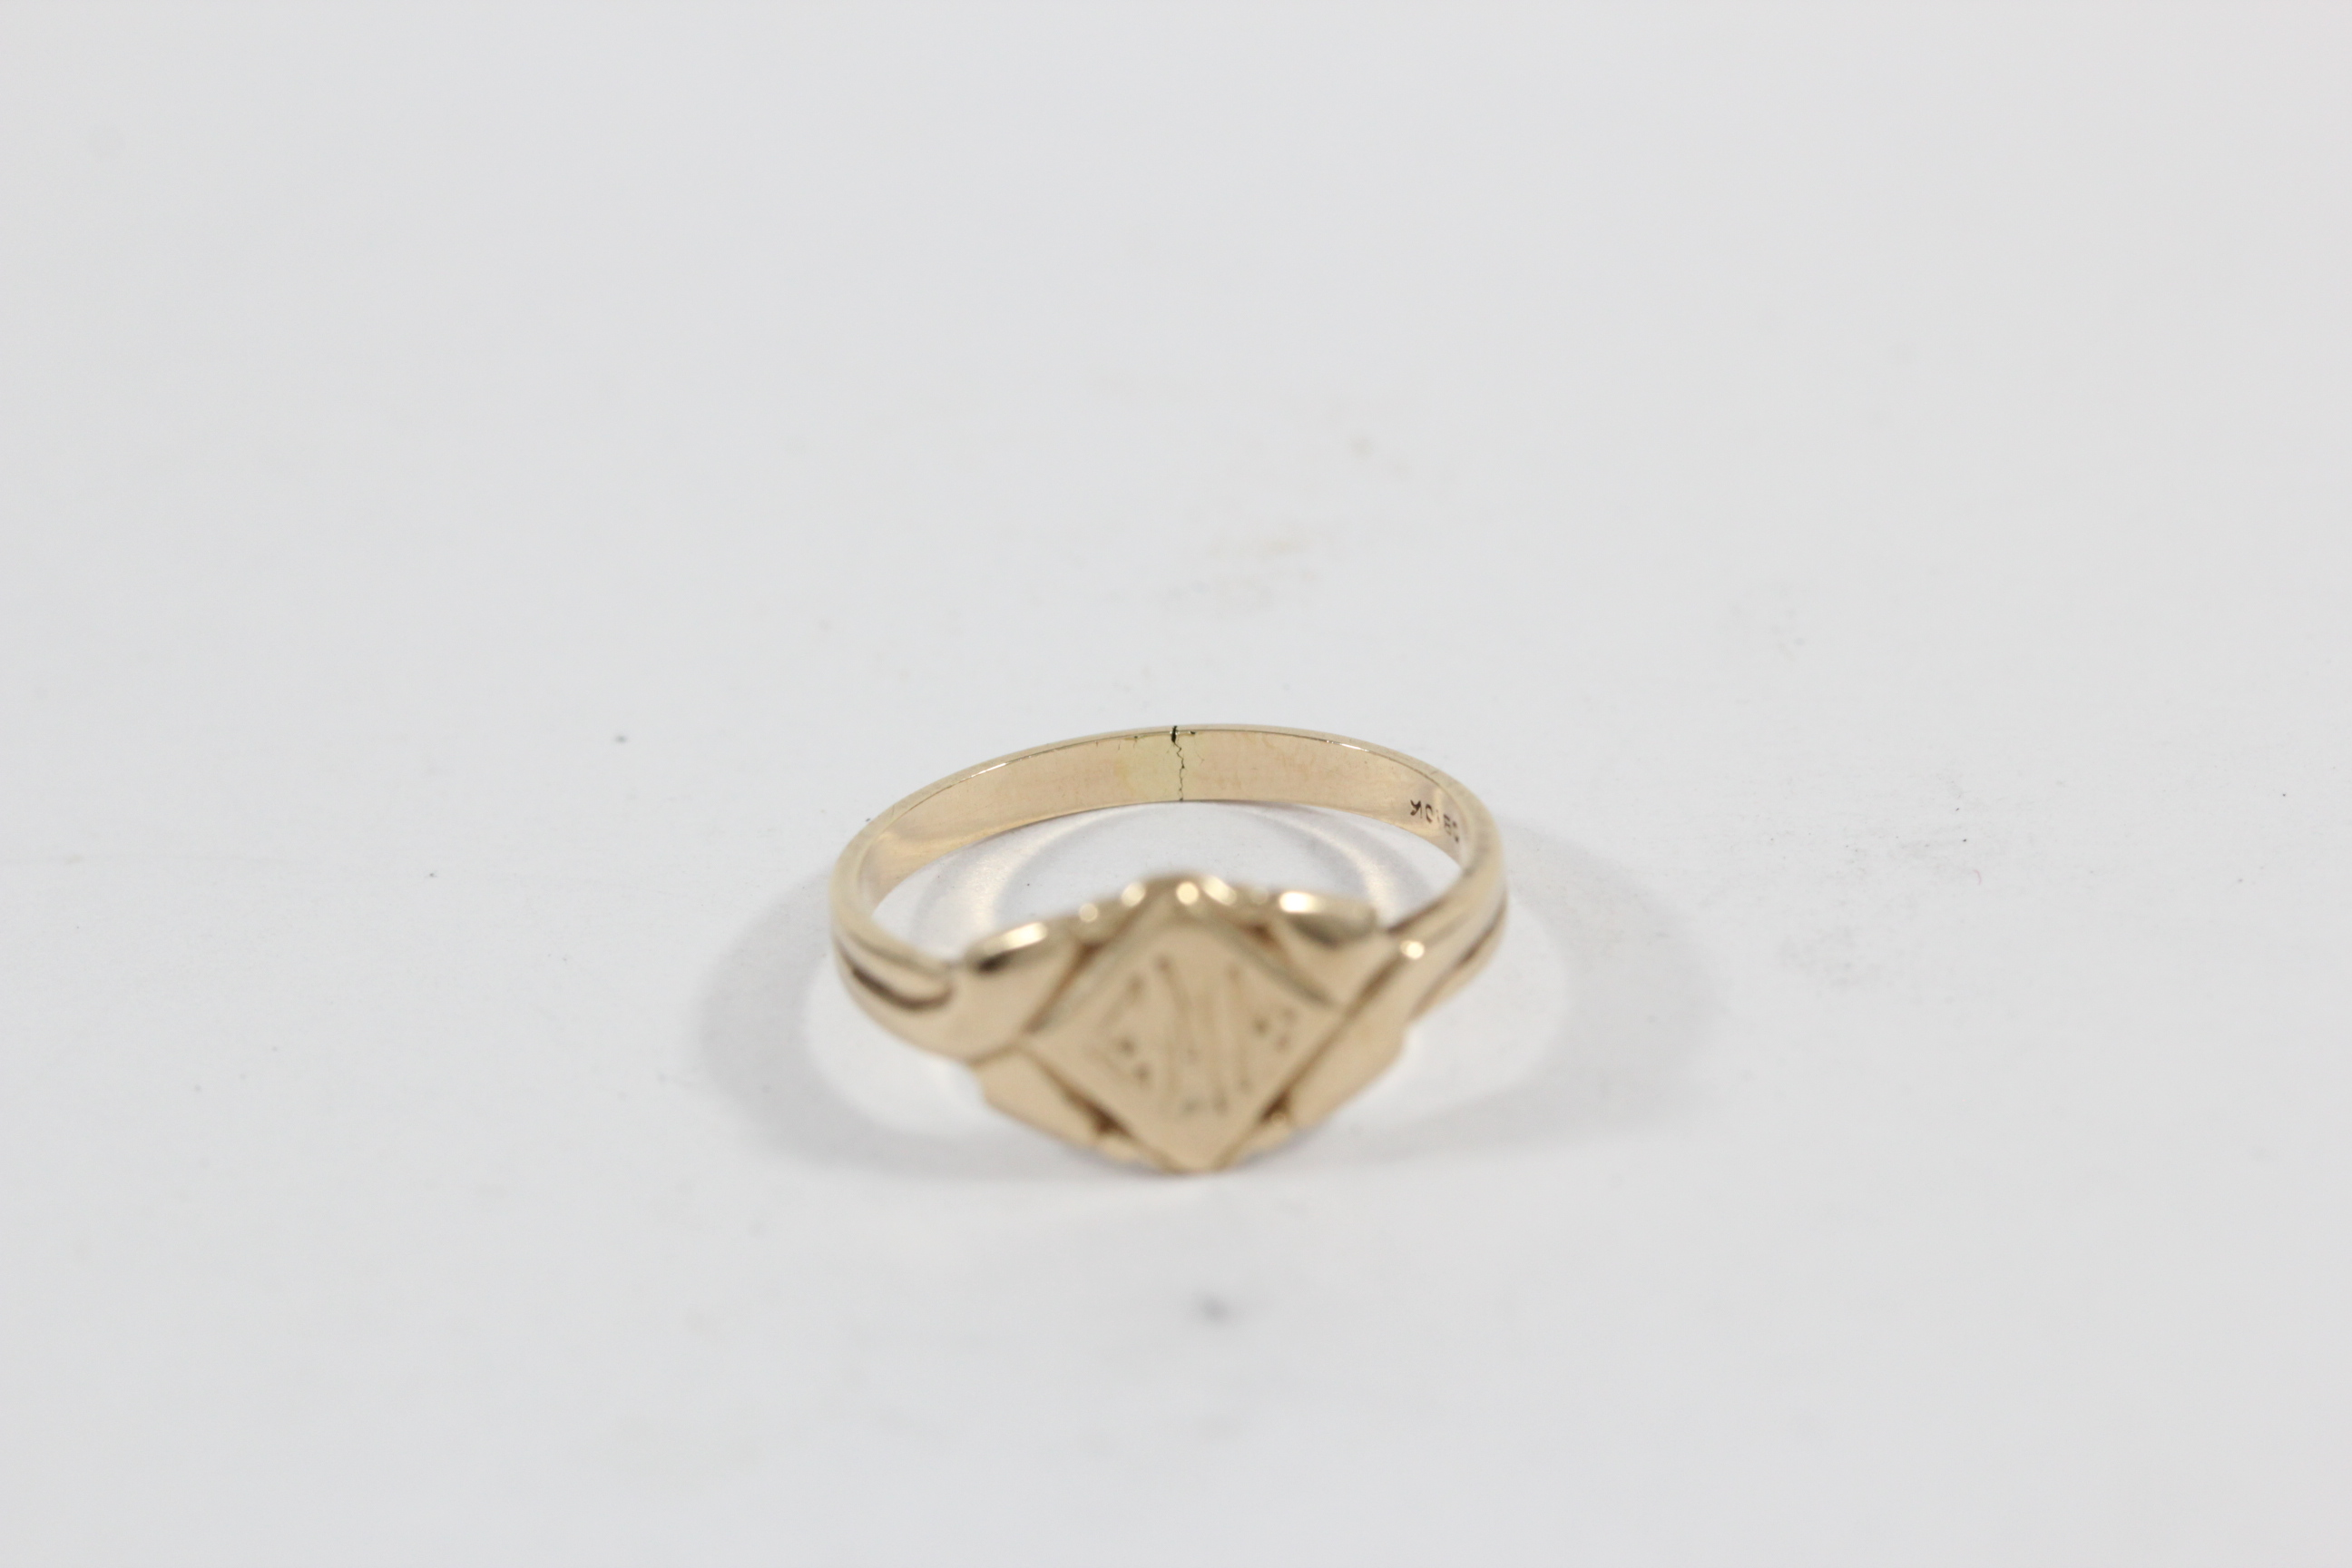 cracked-ring-repair-cost-gold-ring